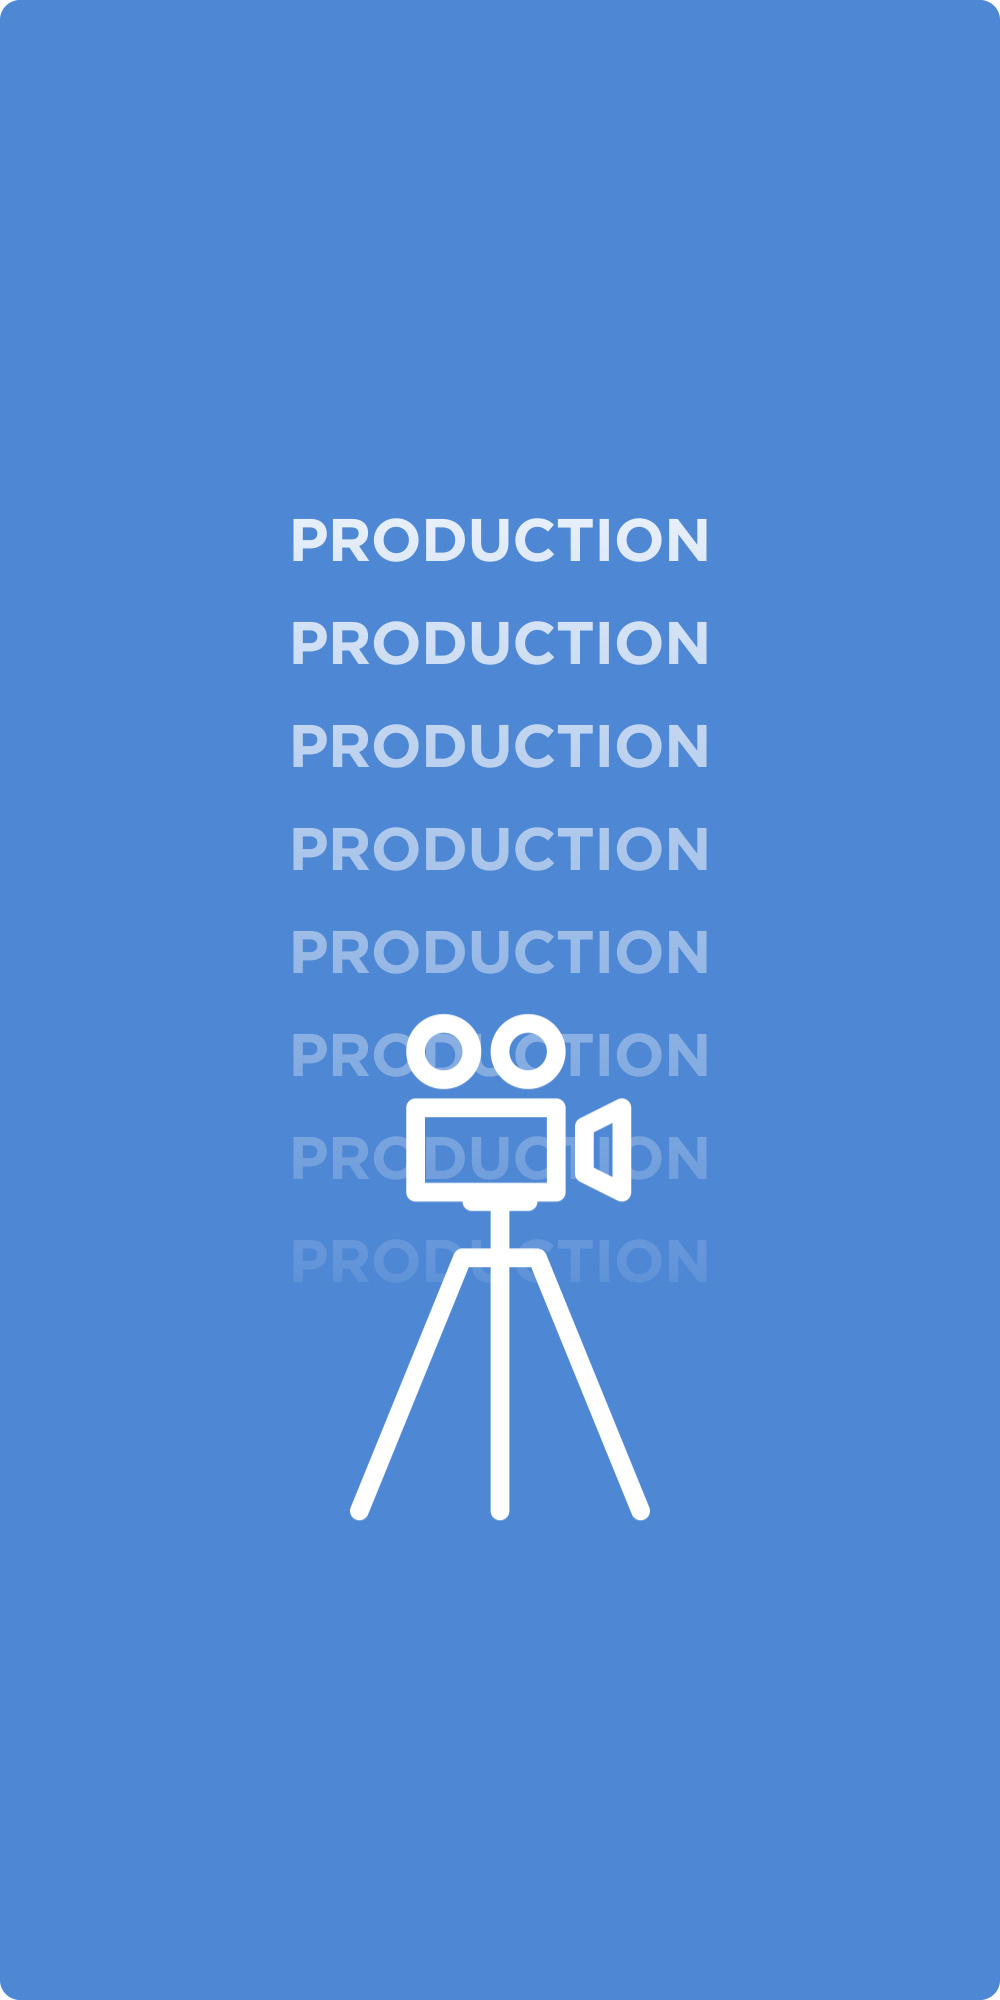 Production as we see it takes on many shapes and sizes. We play to the platform and the audience's expectations upon viewing it. But, whether it takes a massive crew, a one-man-band, or a person with their phone, we are able to handle it.